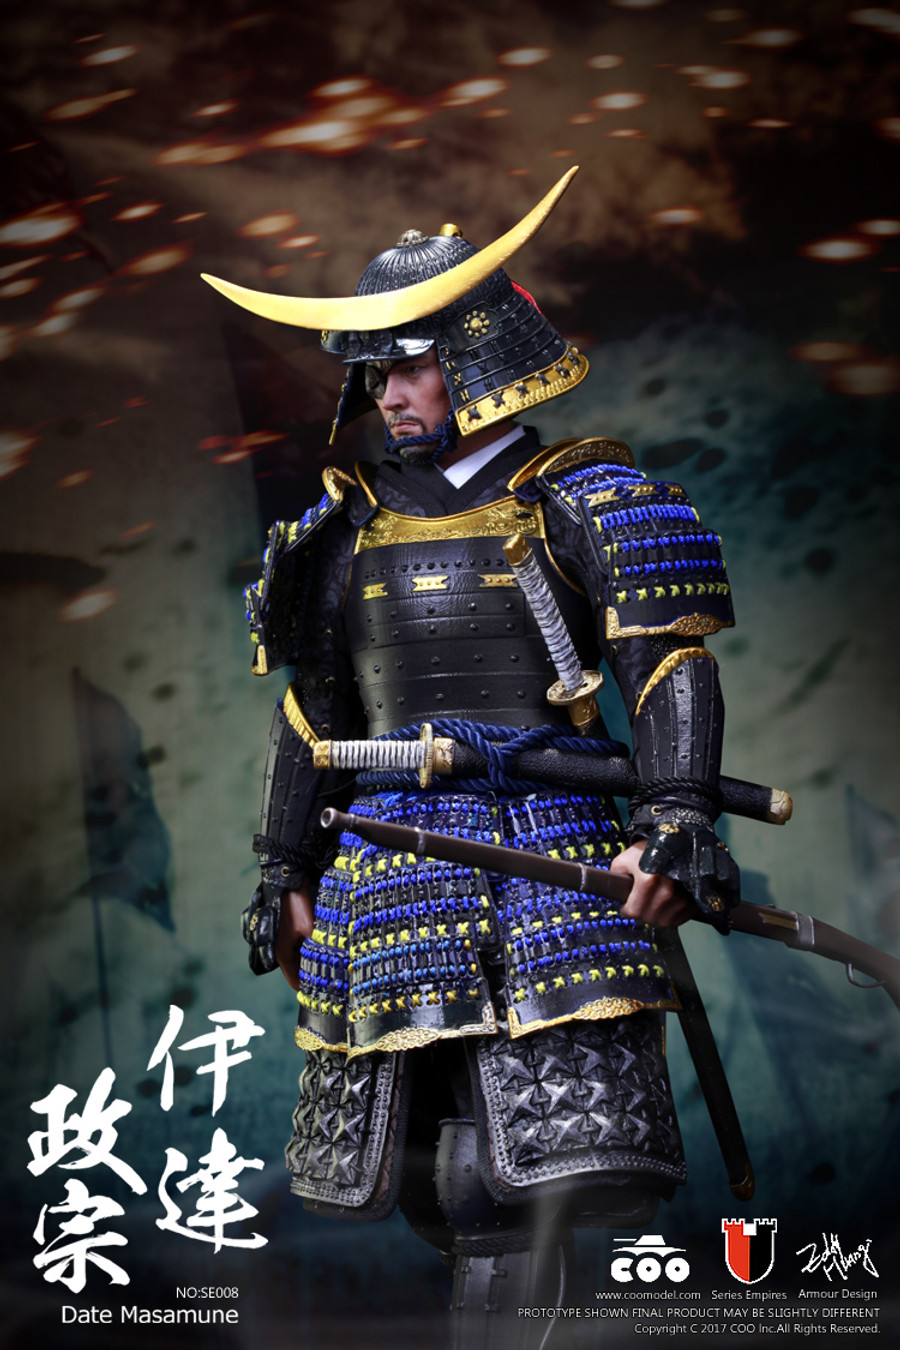 COO Model - Series Of Empires - Date Masamune